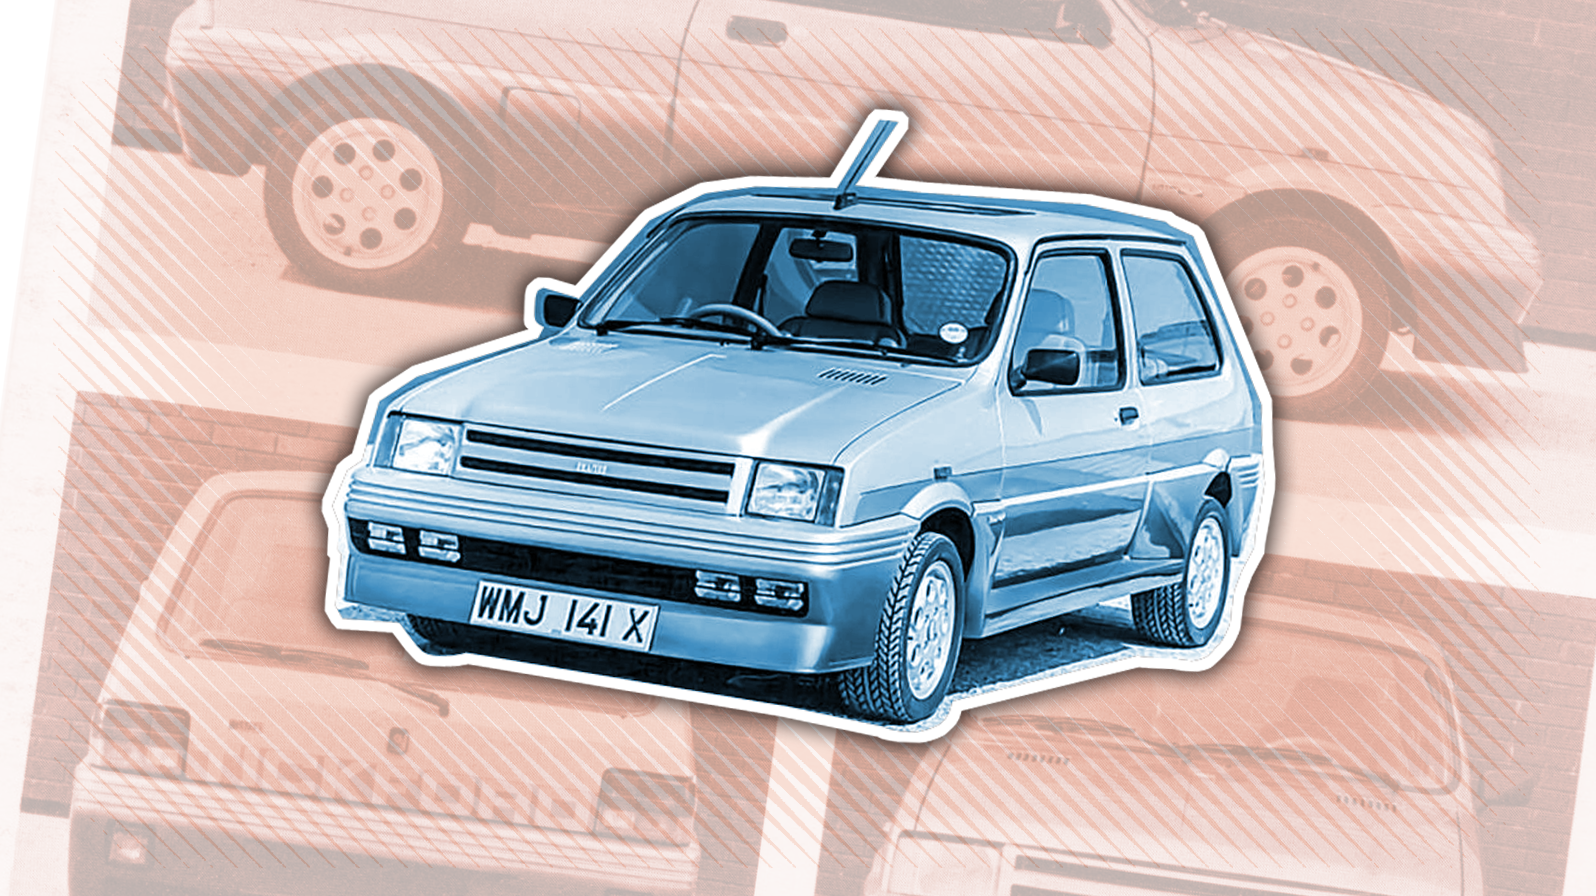 This Flyer For An Odd Little Car Uses One Of The Most Unsettling Performance Analogies Ever